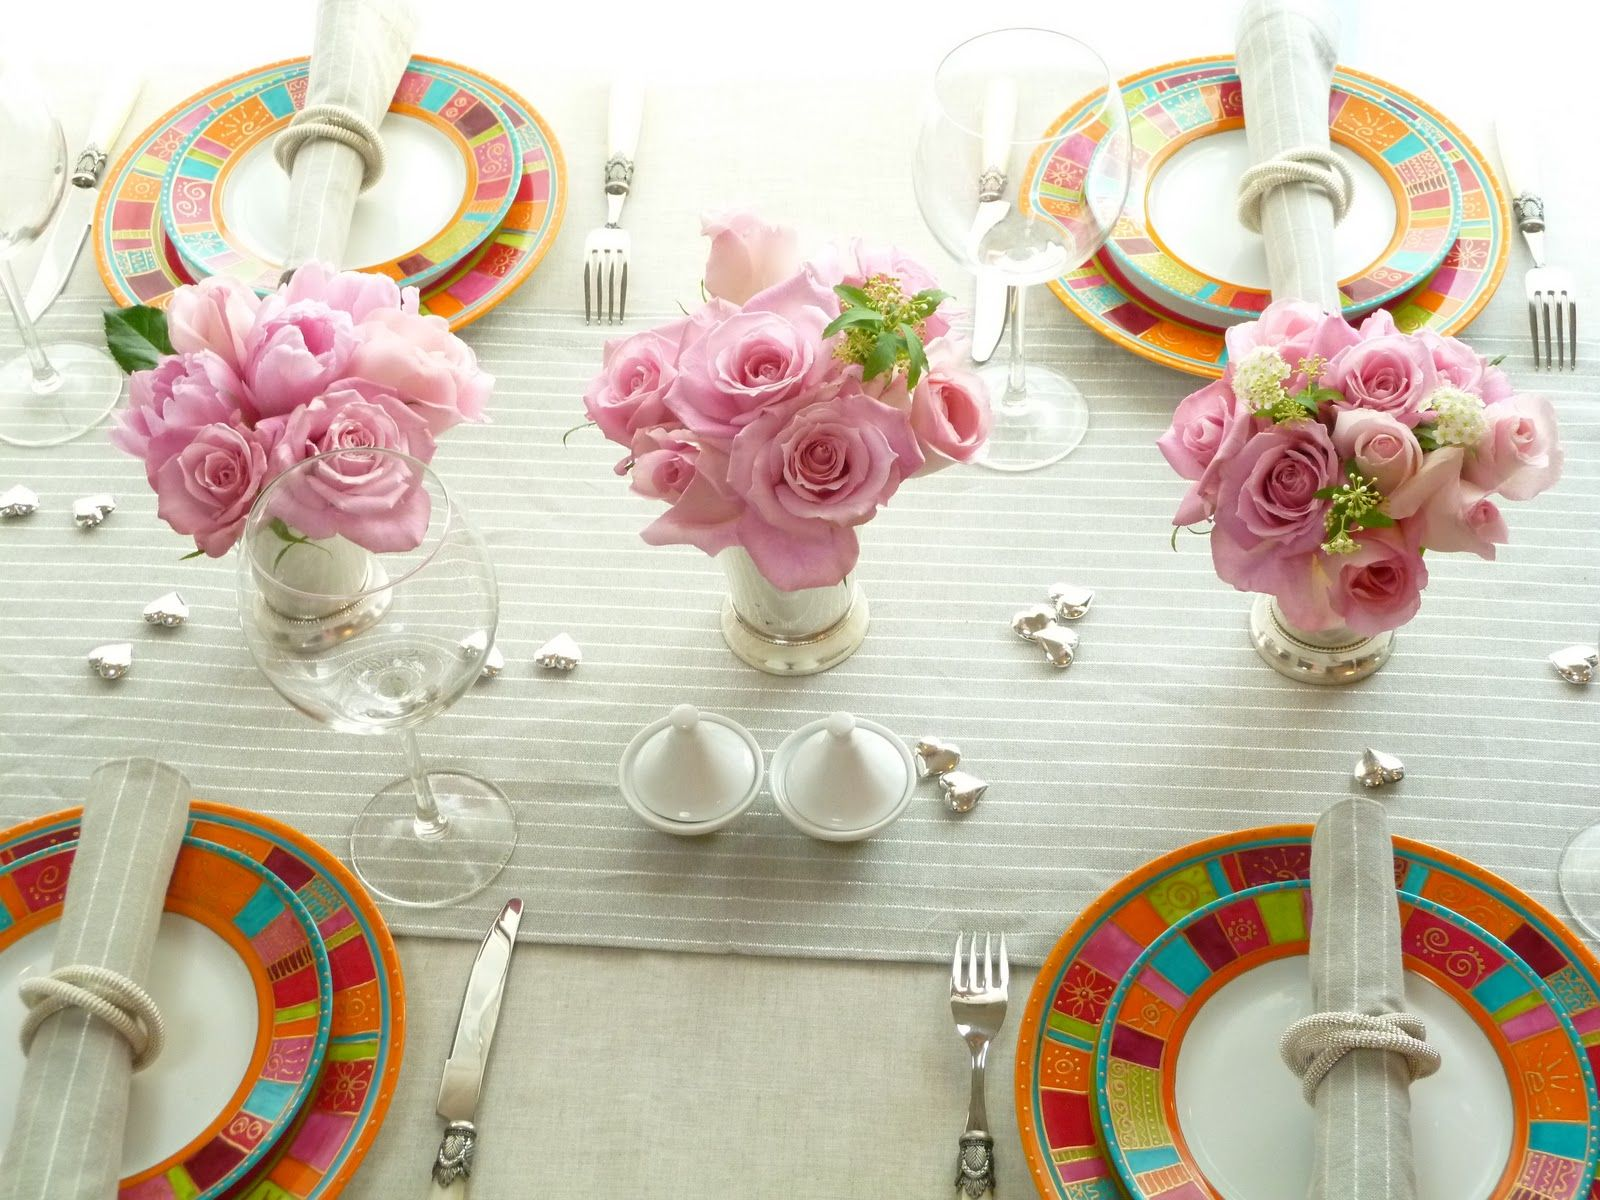 Spring Table Decorations scroll down to see the rest of the spring table decorating ideas